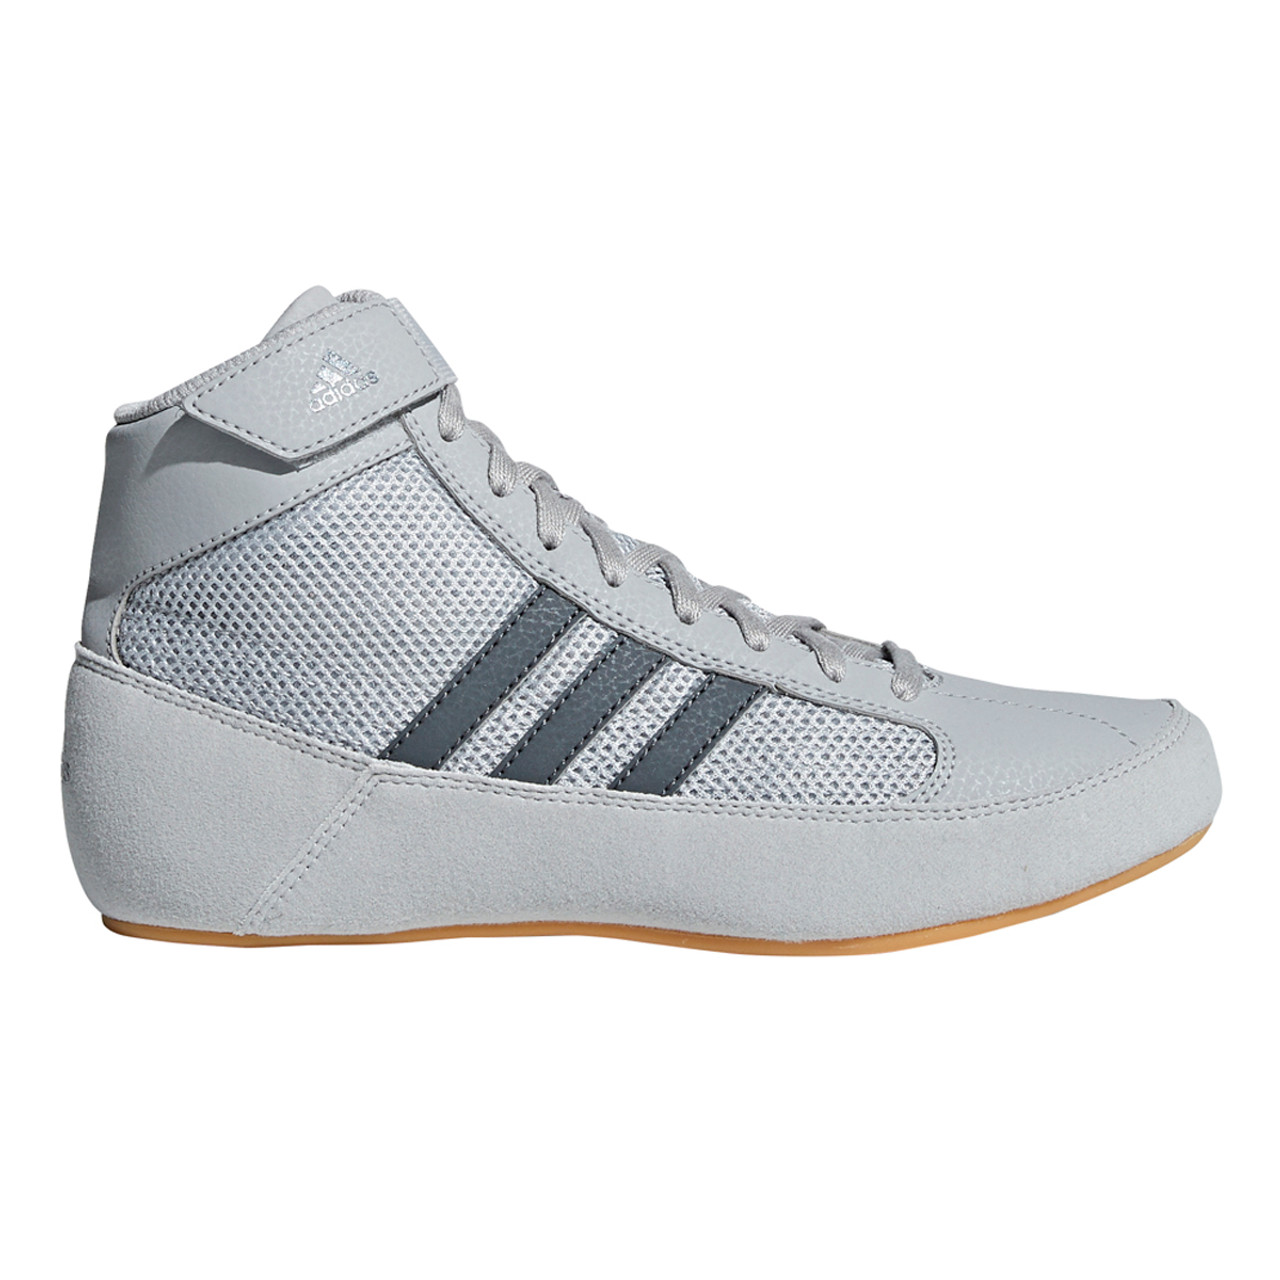 new arrival 2870f e281b Adidas HVC 2 Youth Wrestling Shoes AC7503 - Gray